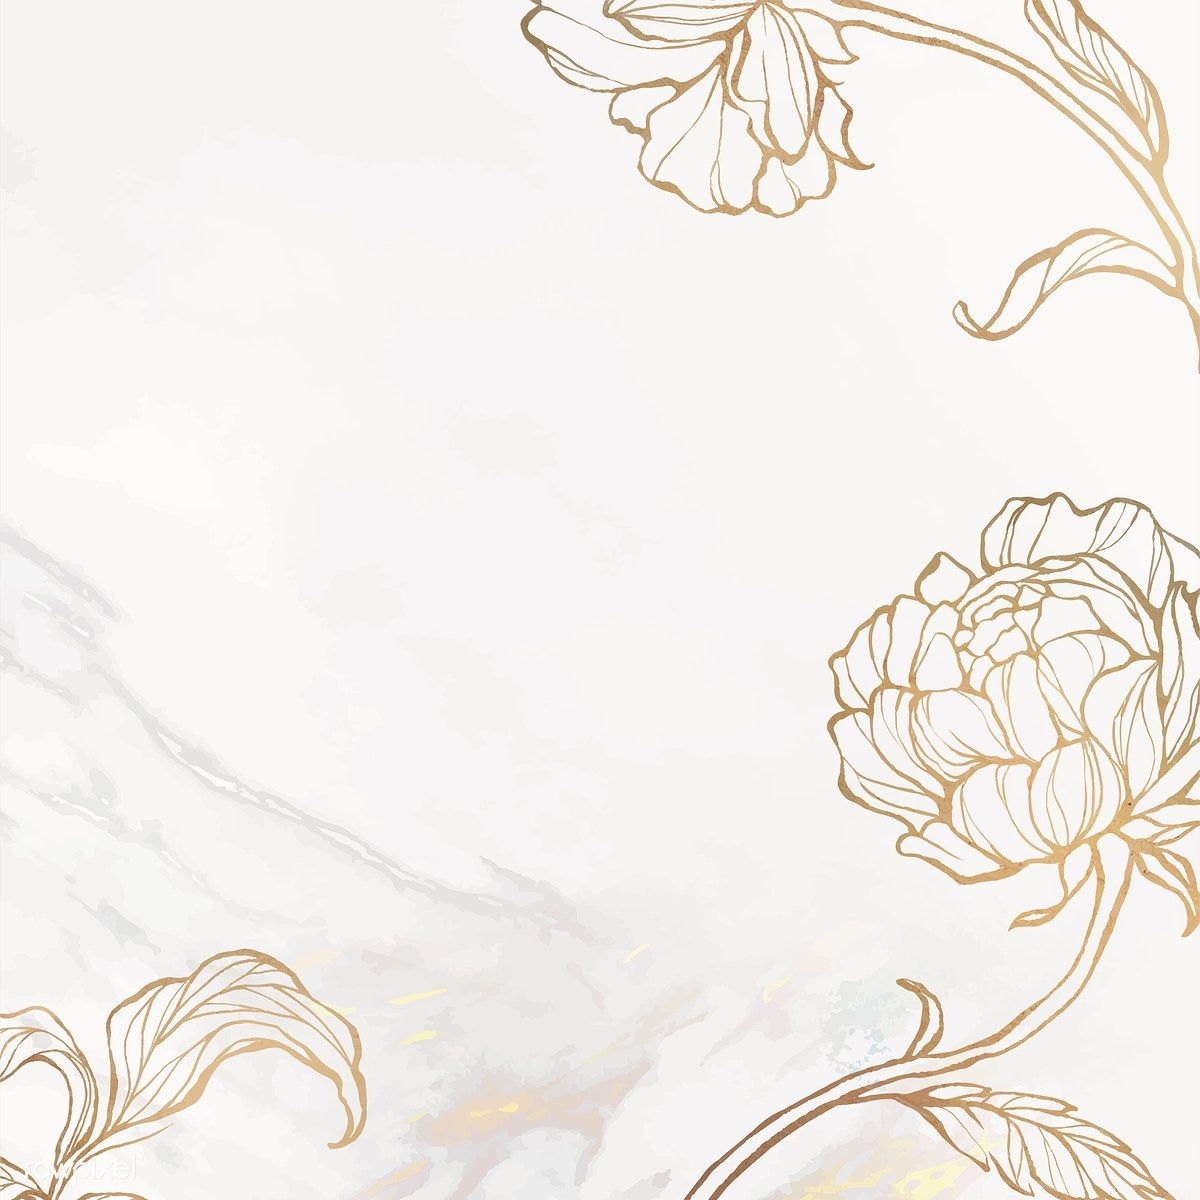 Download Premium Illustration Of Gold Floral Outline On Marble Background In 2020 Marble Background Vintage Floral Backgrounds Leaf Outline